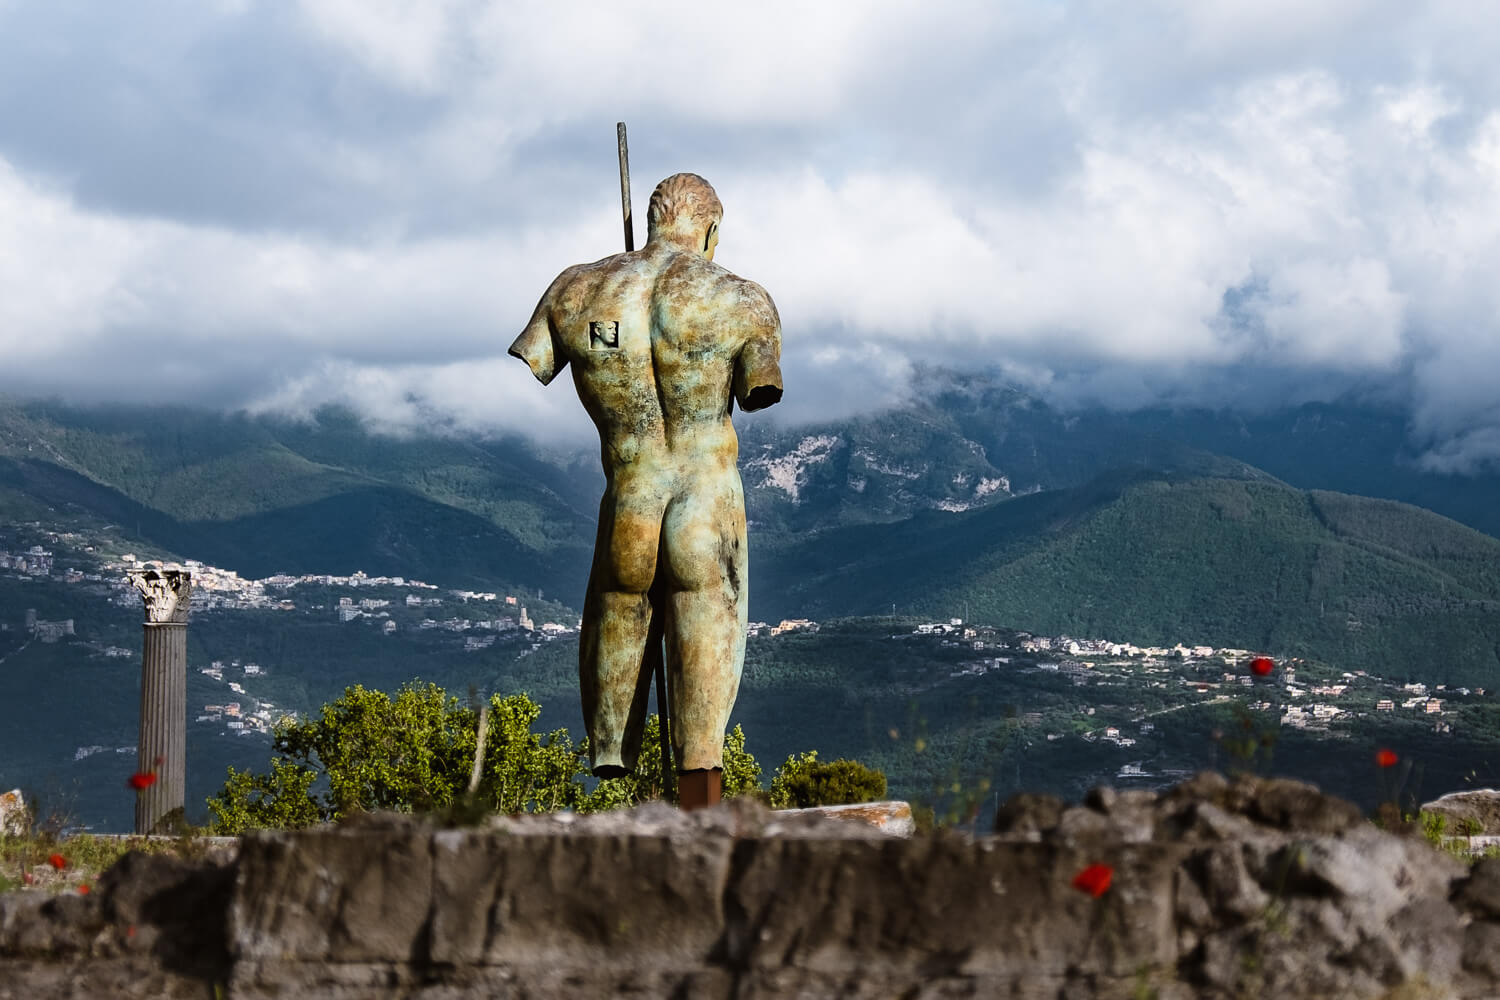 """Statue in Pompeii. Travel photography and guide by © Natasha Lequepeys for """"And Then I Met Yoko"""". #rome #italy #travelblog #travelphotography"""